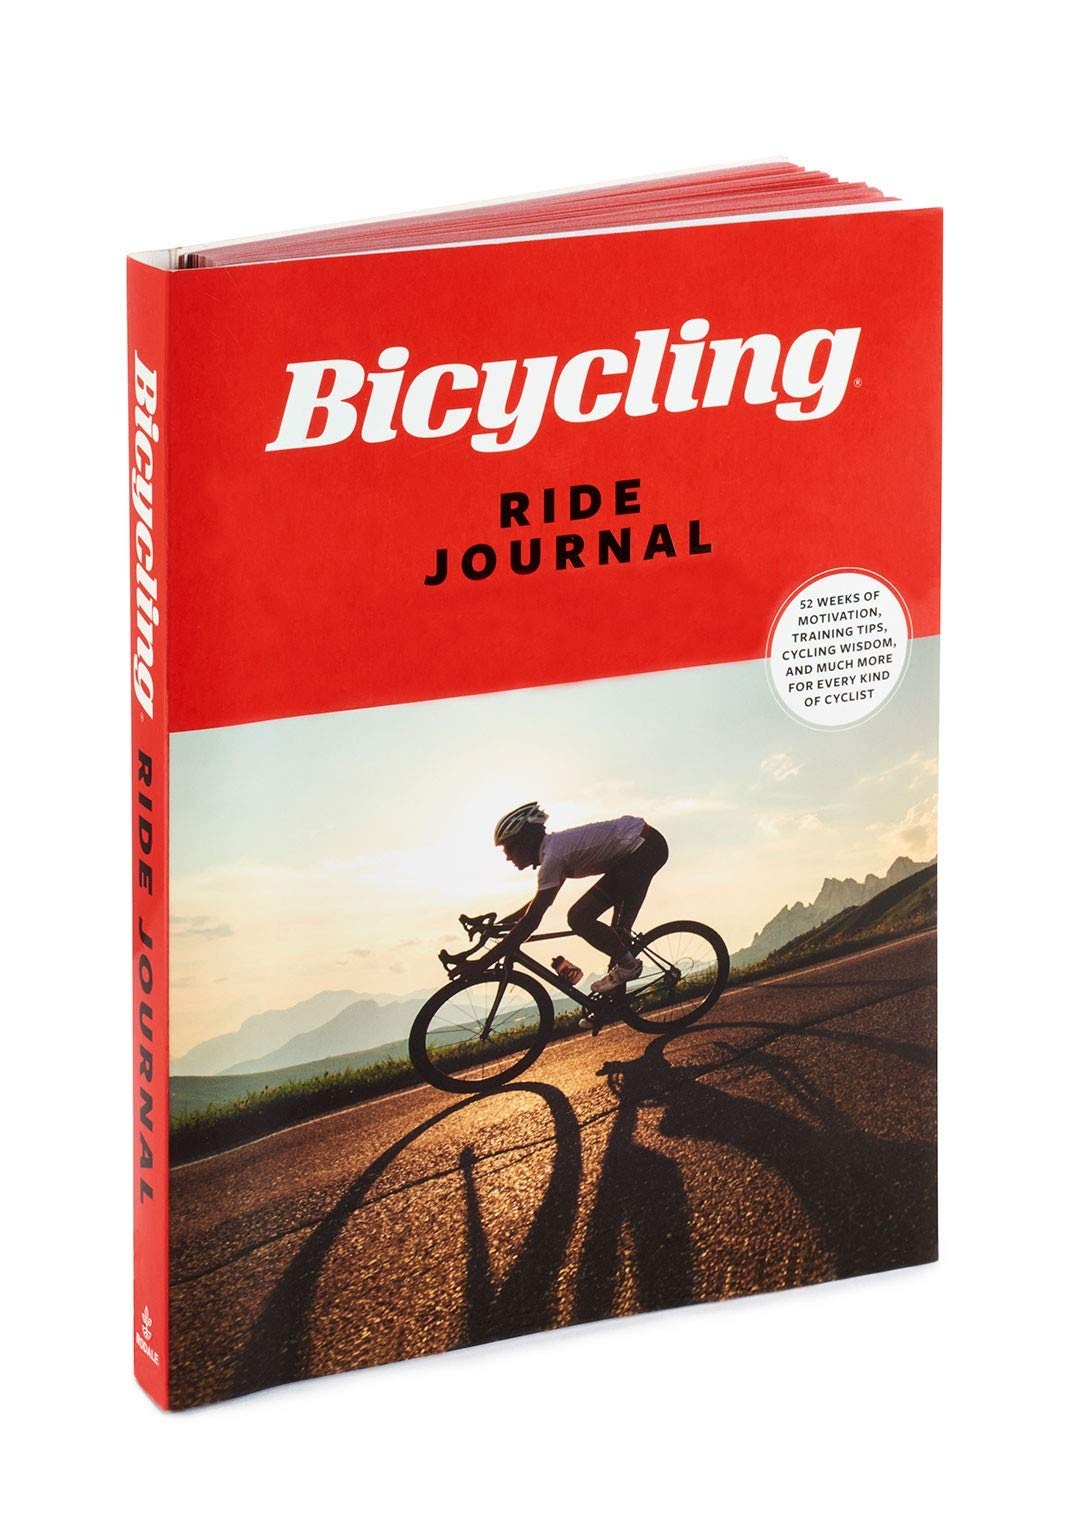 Bicycling Ride Journal: 52 Weeks of Motivation, Training Tips, Cycling Wisdom, and Much More for Every Kind of Cyclist